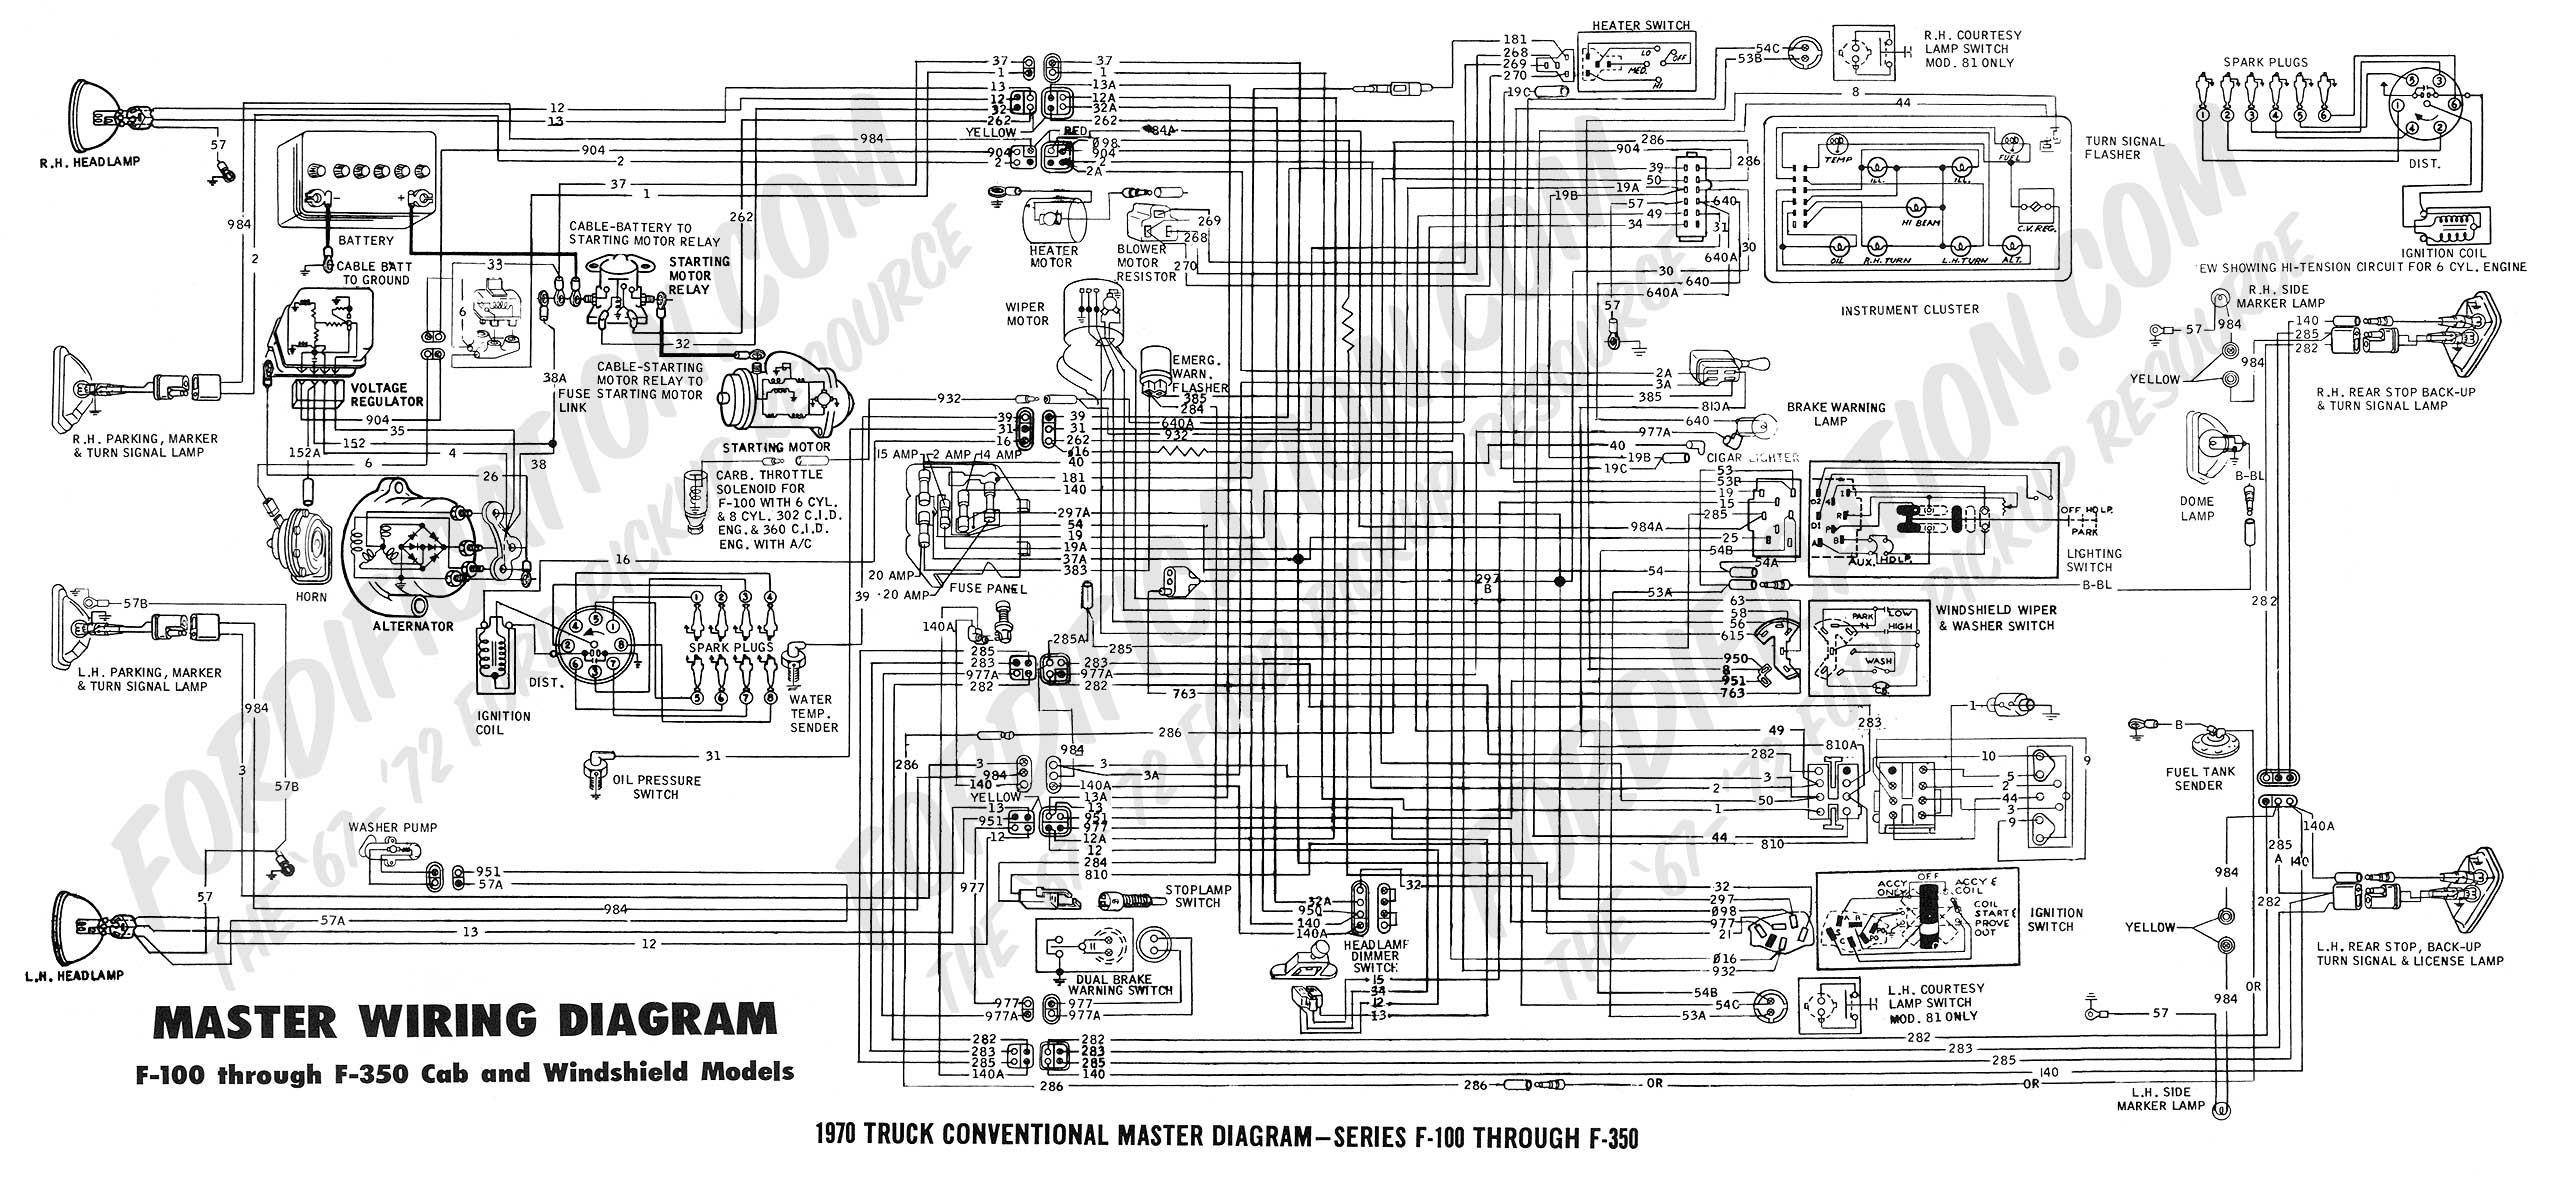 wiring diagram 70_master 1990 ford tempo wiring diagram wiring diagram simonand 1970 mustang wiring diagram at soozxer.org